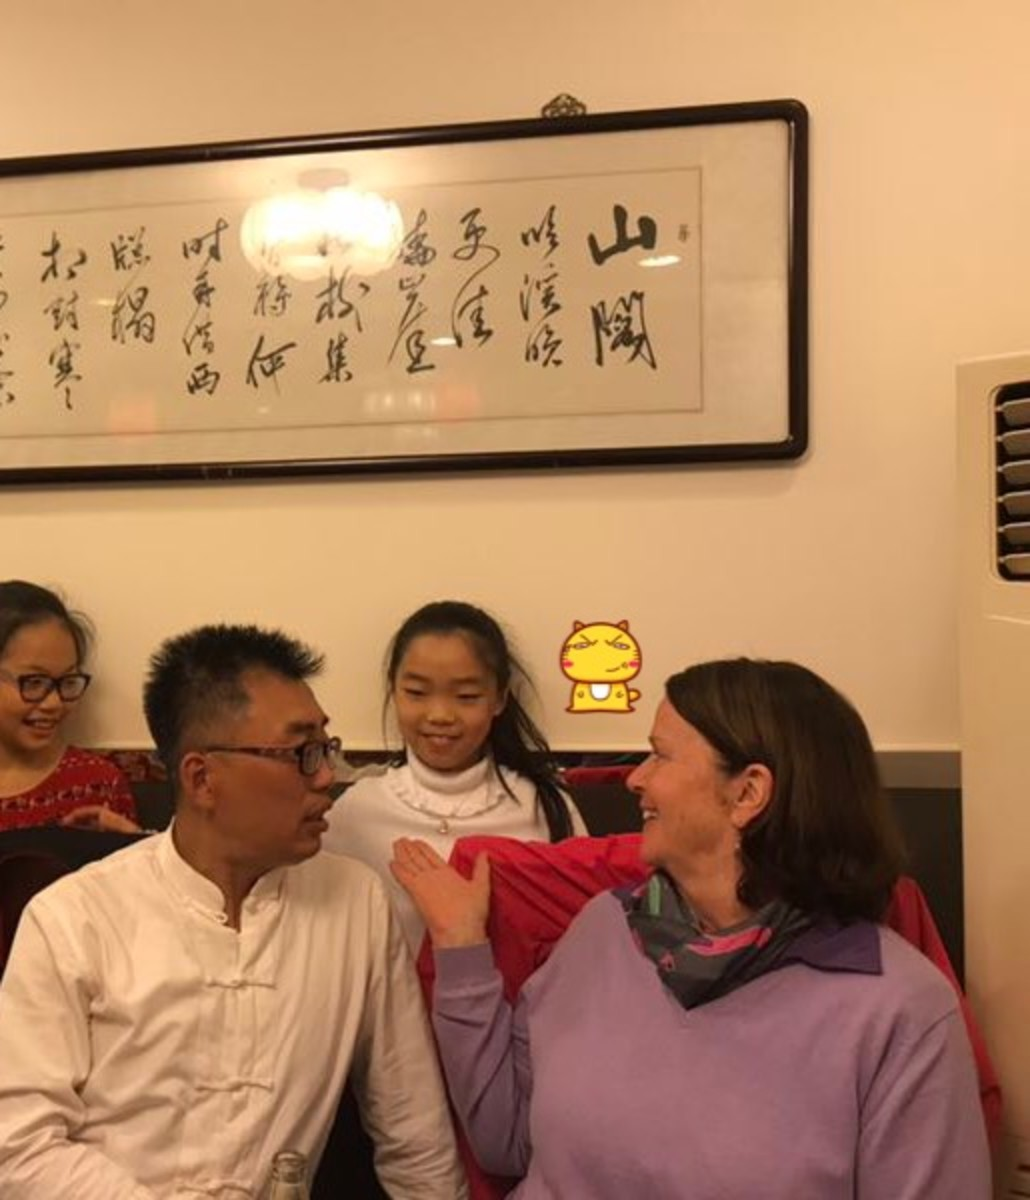 Meeting VIPKID  student Jane in Beijing!   What a great time we had!